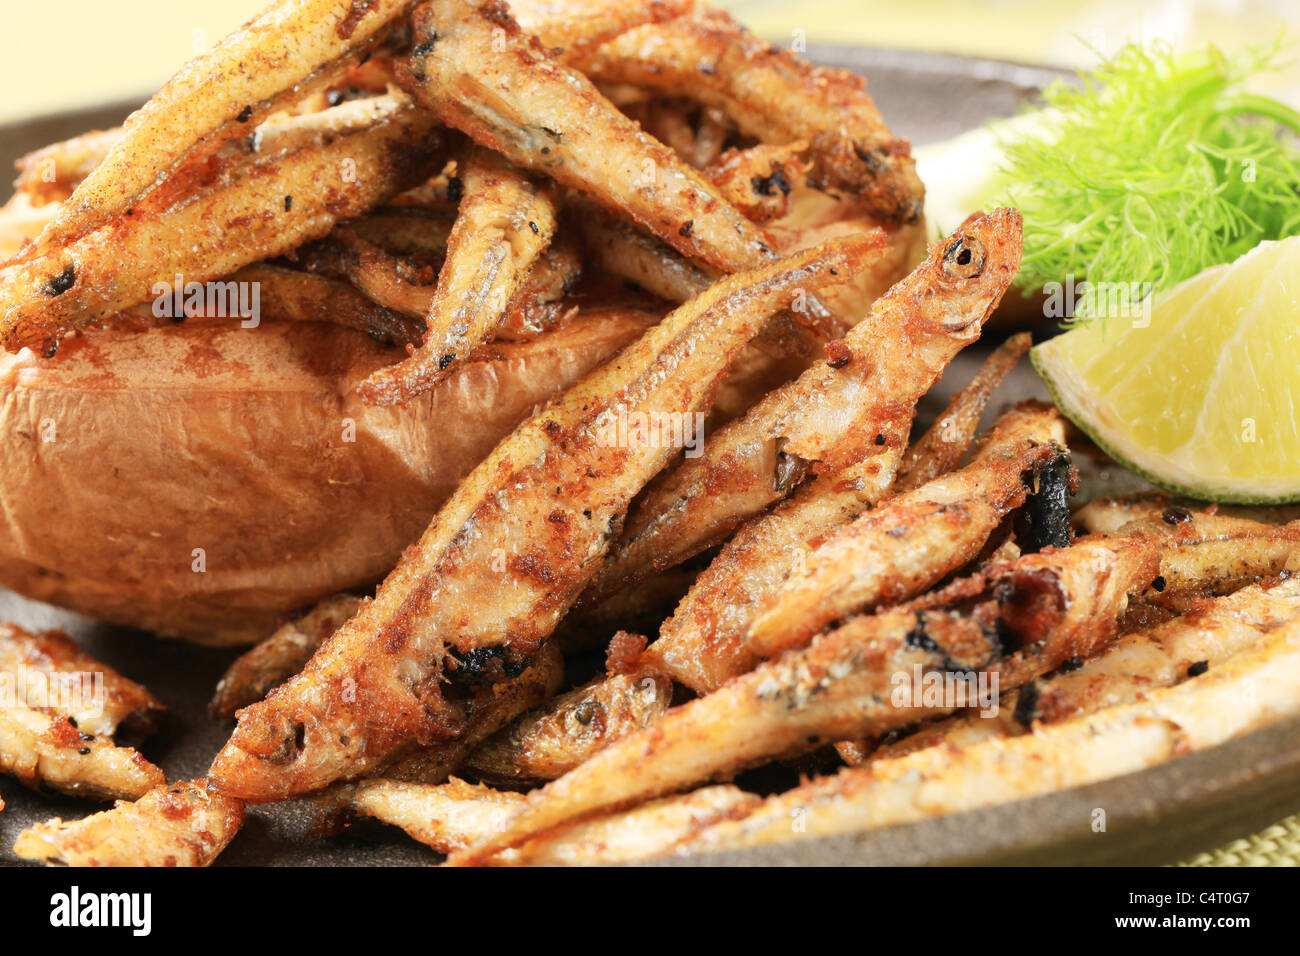 Fried anchovies and baked potato - detail - Stock Image